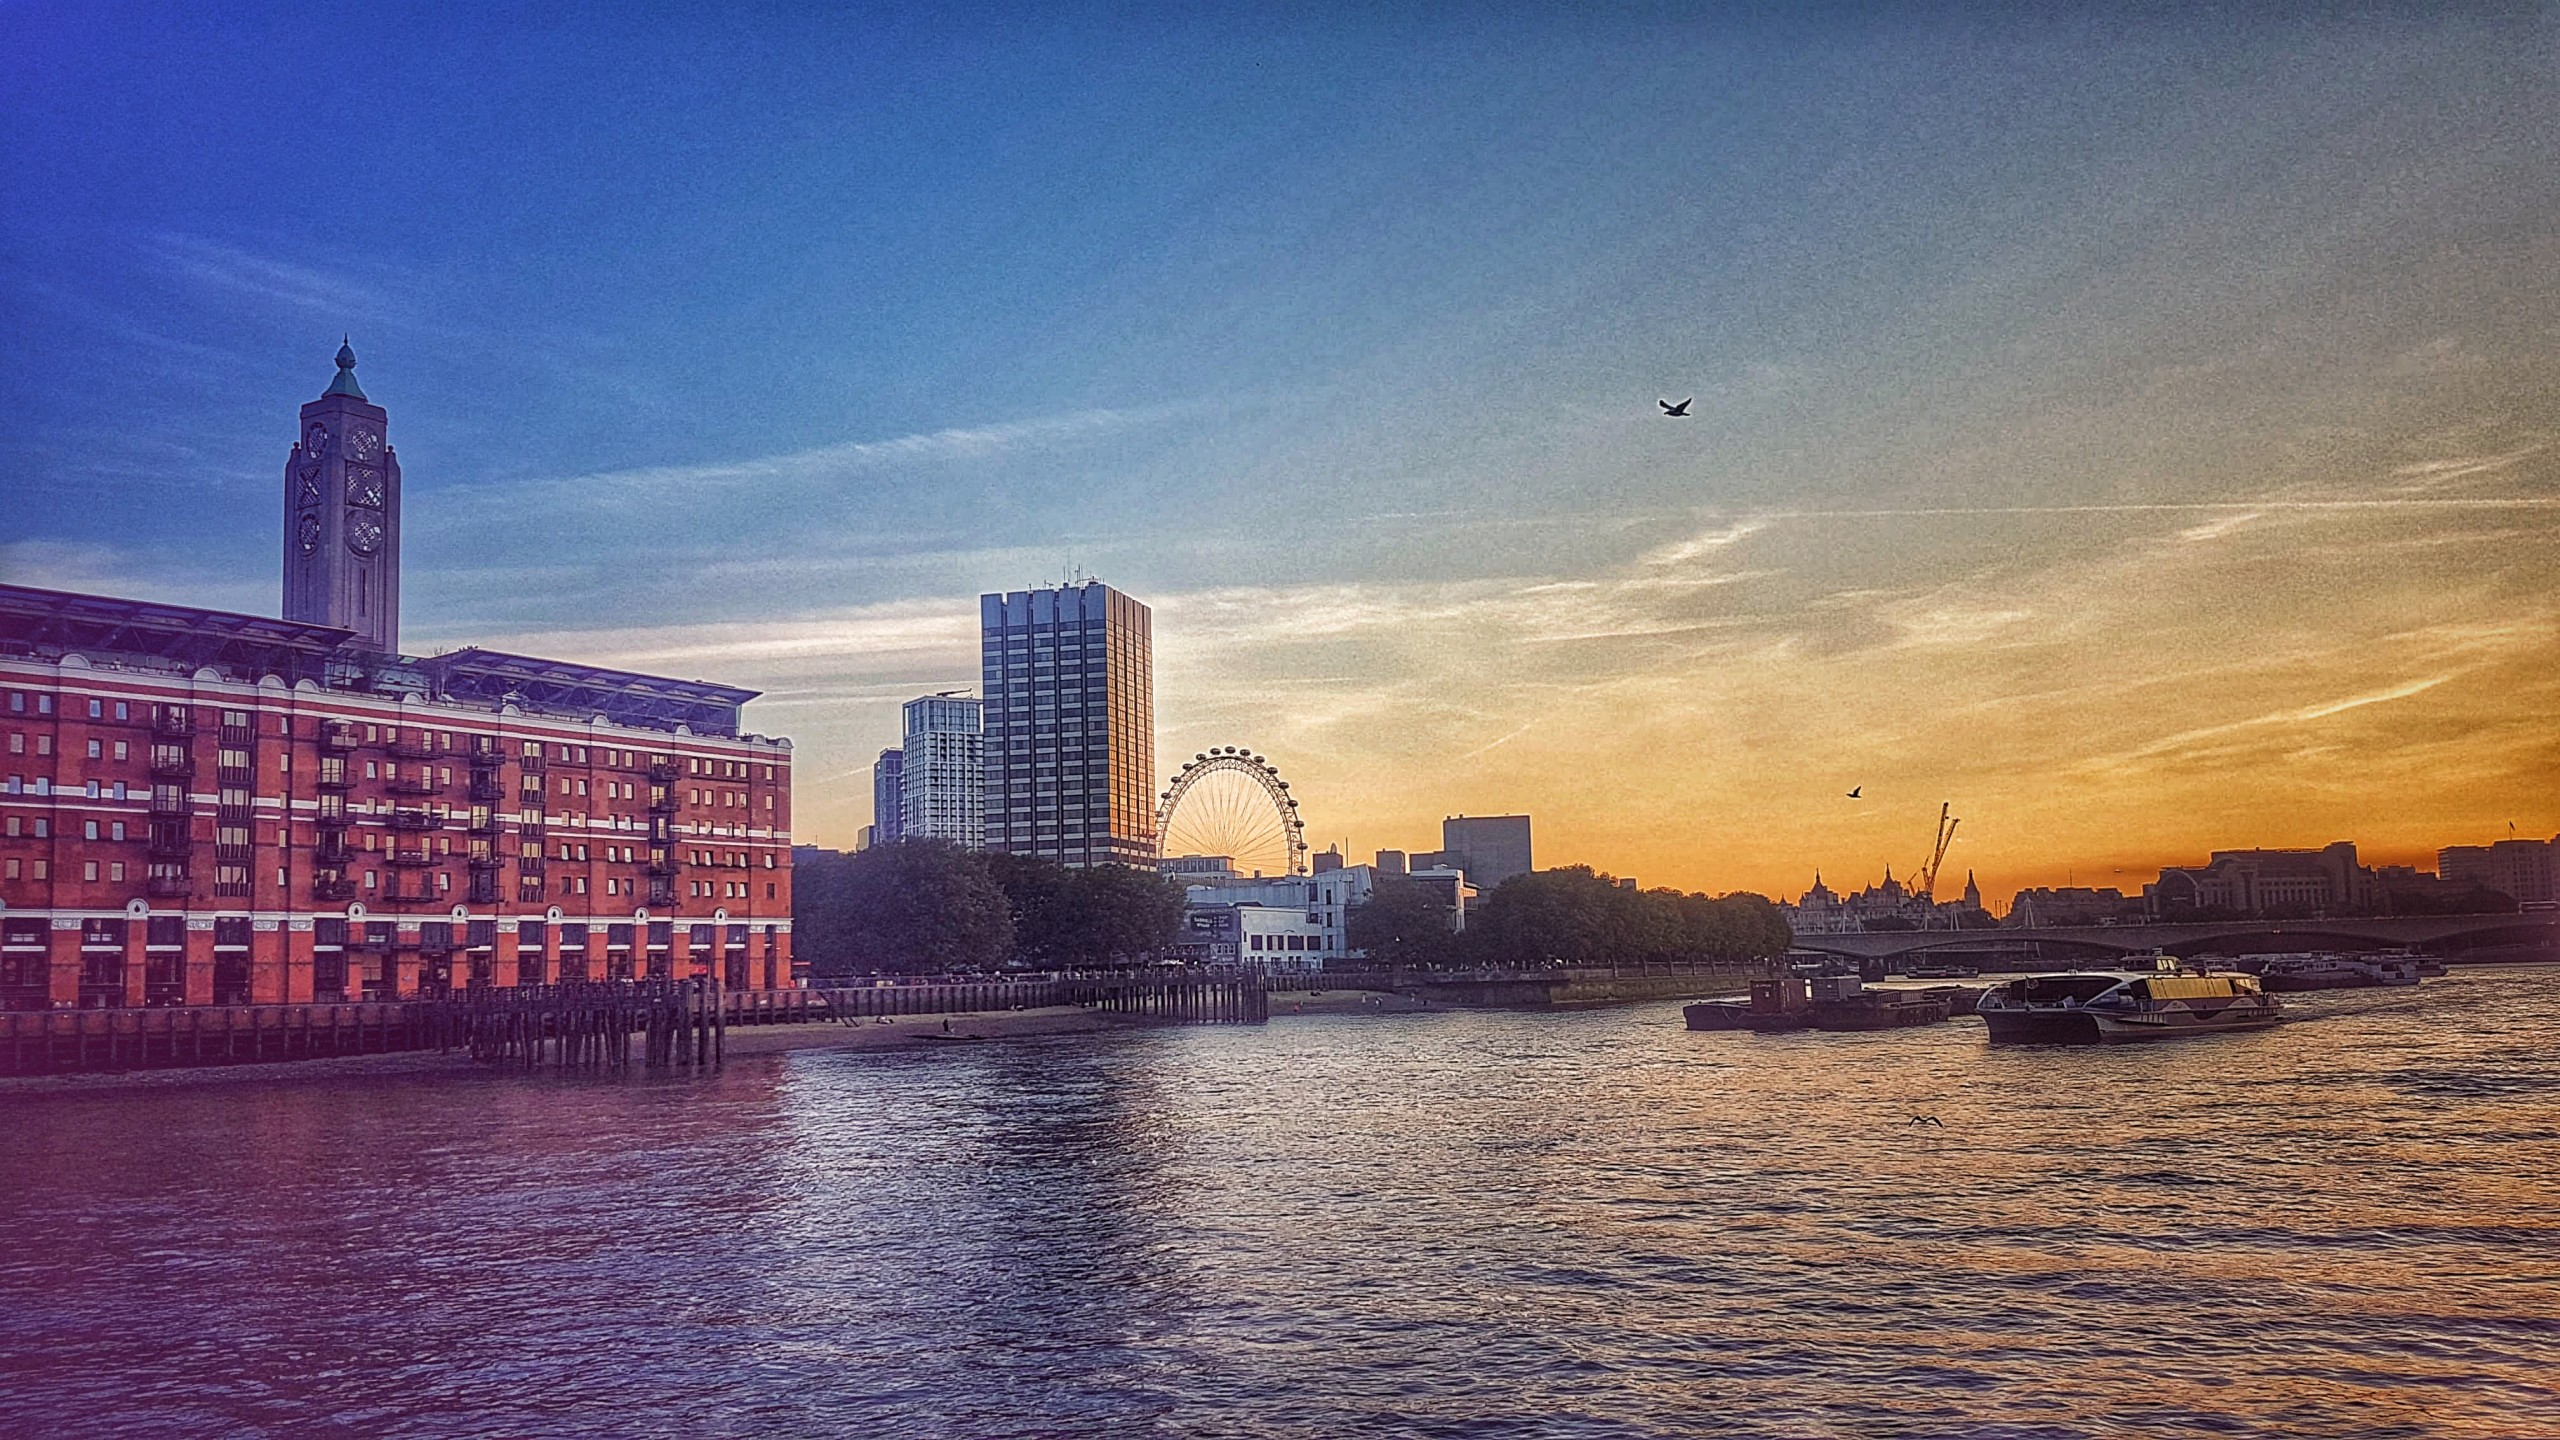 The london eye overlooking thames river